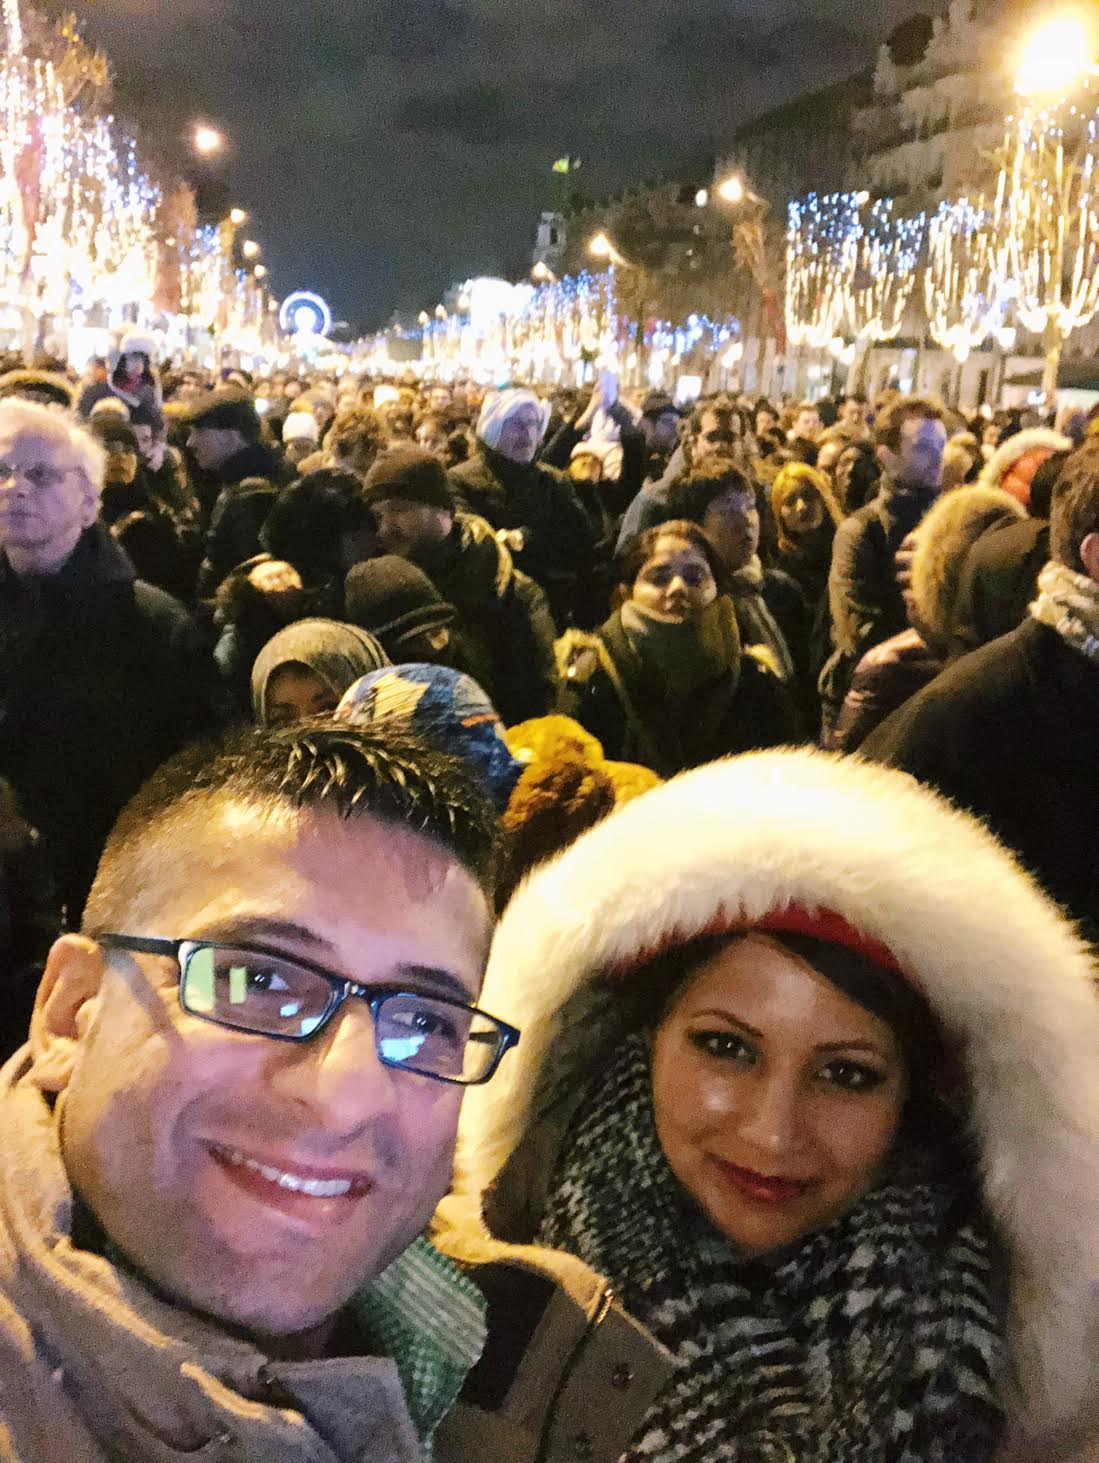 Muslim-travel-tips-New-Years-Eve-Champs-Elysees.jpg